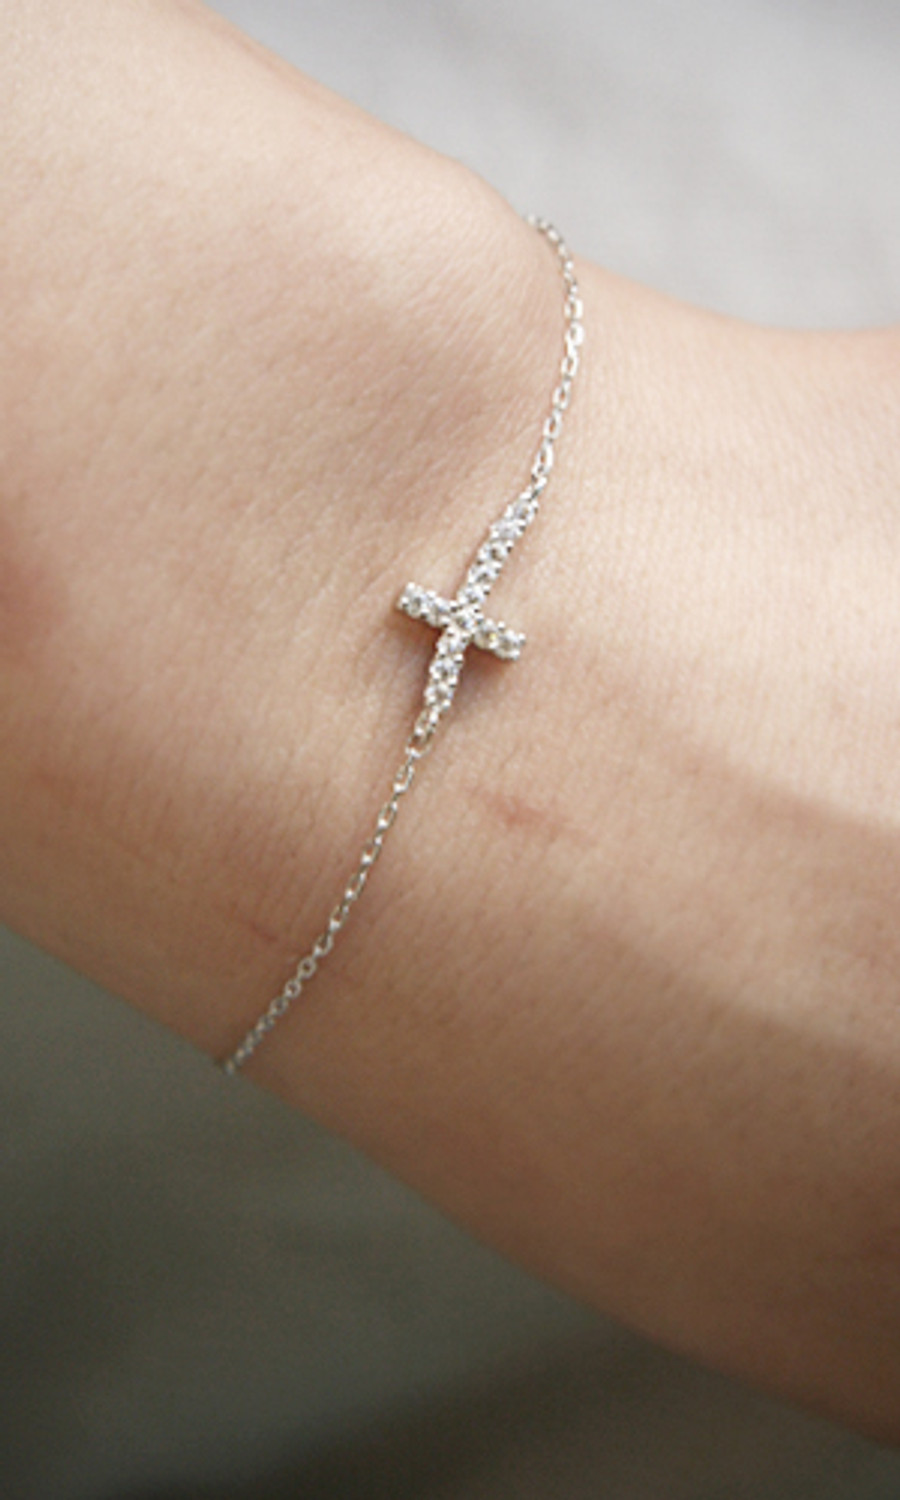 Swarovski Curved Sideways Cross Bracelet White Gold